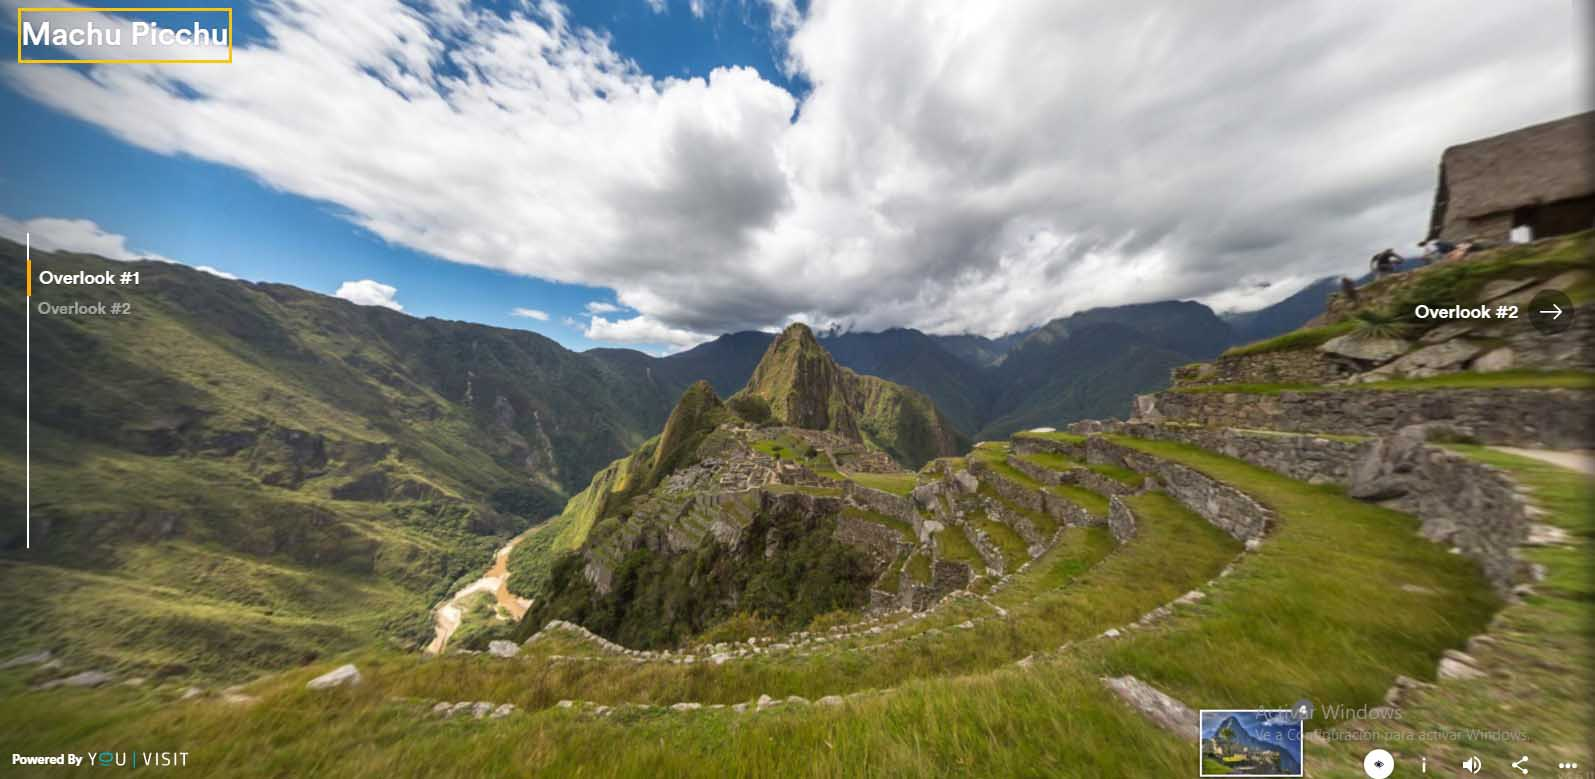 Top 1 Machu Picchu Virtual Tours